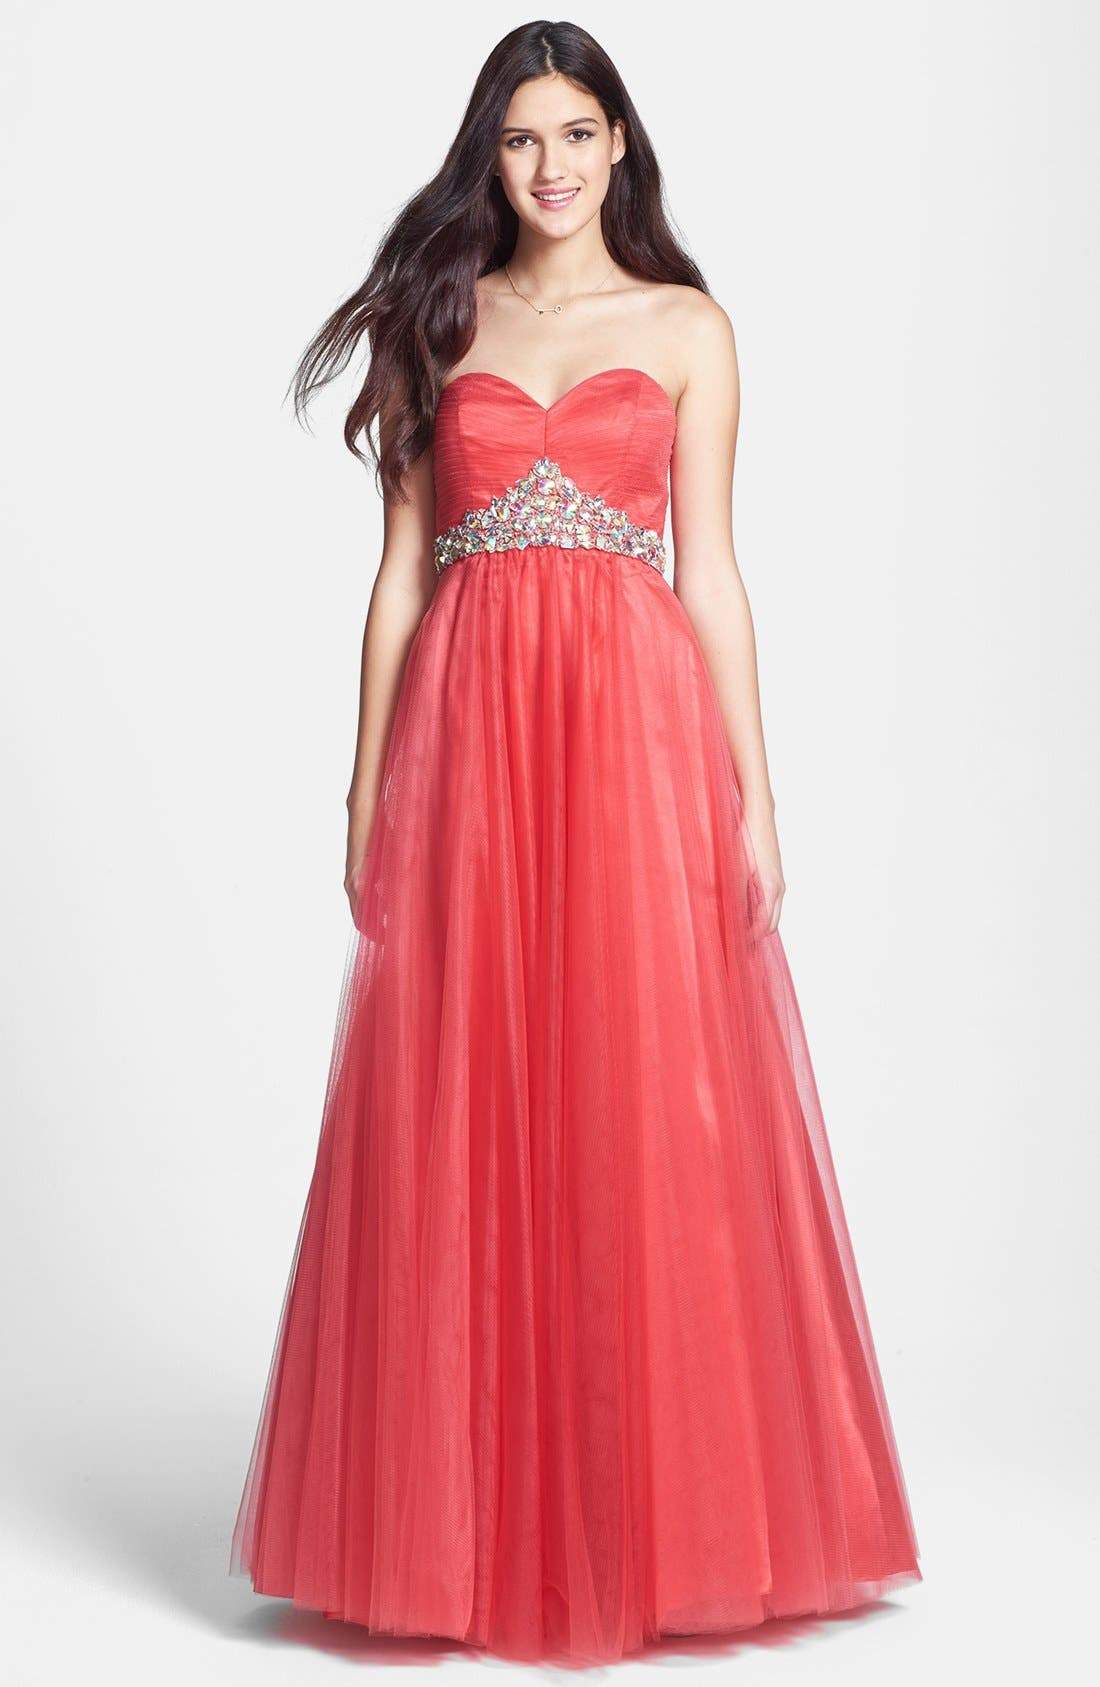 Main Image - Sean Collection Embellished Strapless Tulle Ball Gown